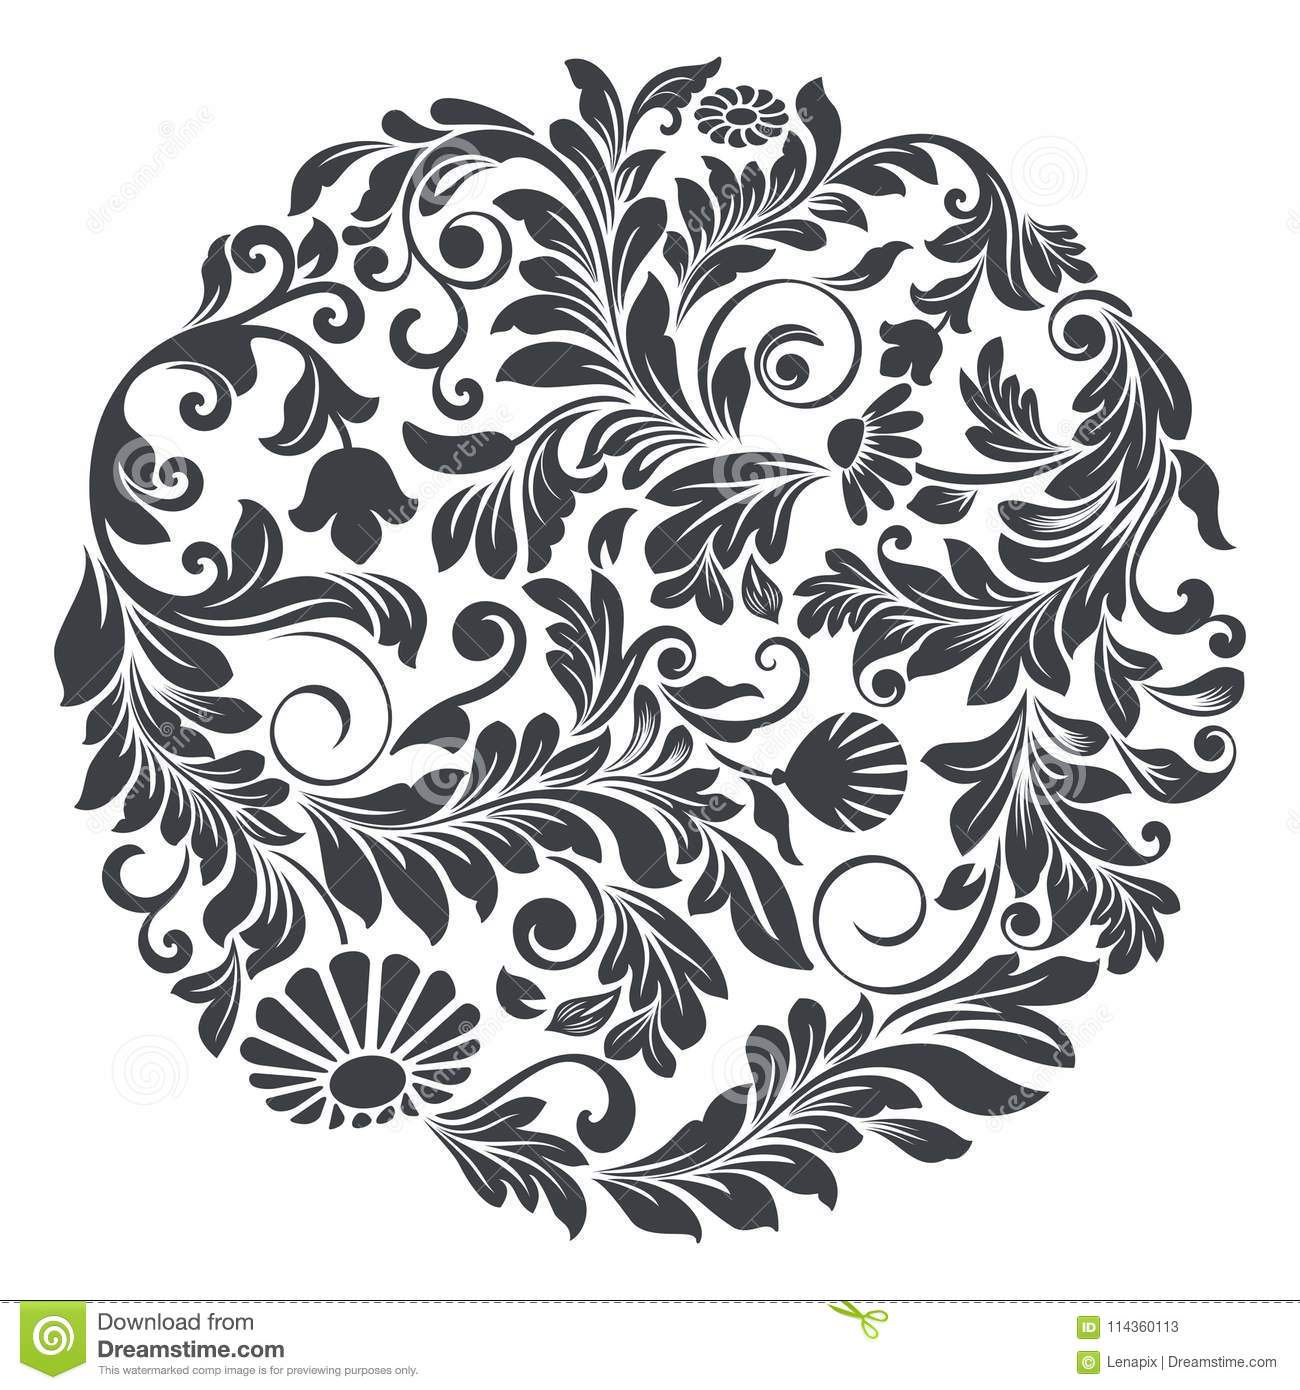 Black Flower Round Up: Black And White Round Floral Element Stock Vector